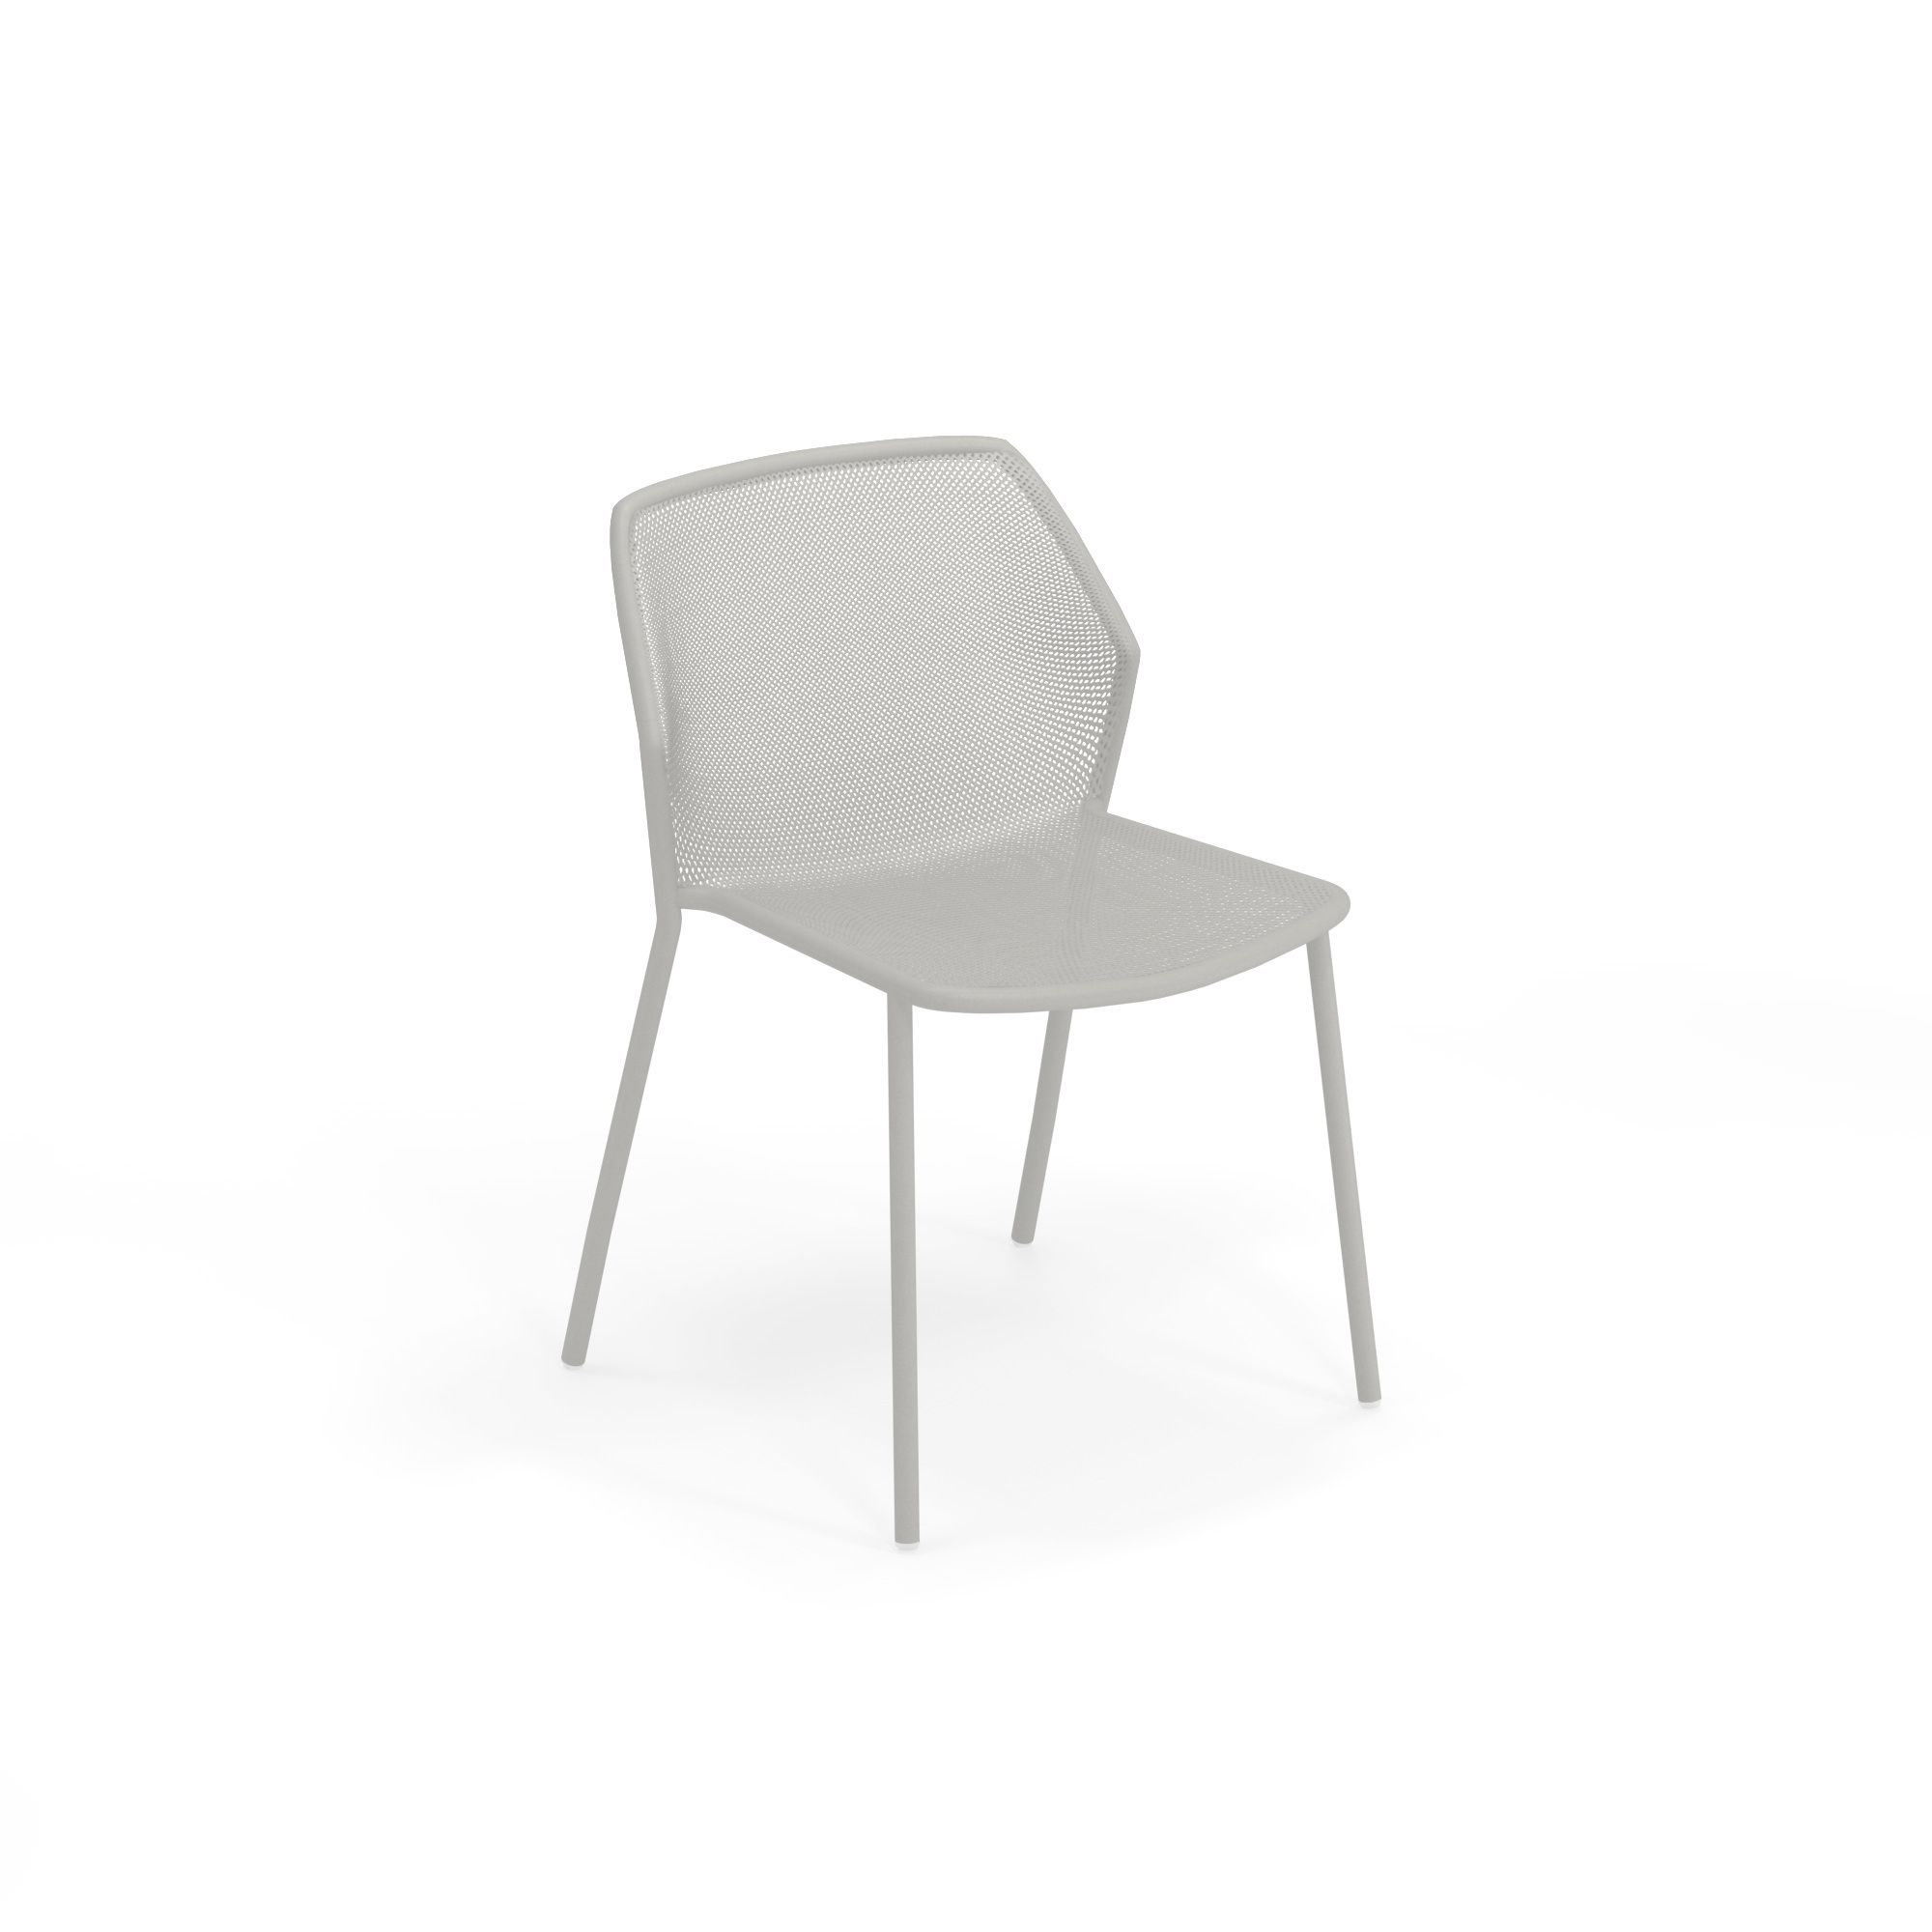 emuamericas, llc 521-73 chair, side, stacking, outdoor